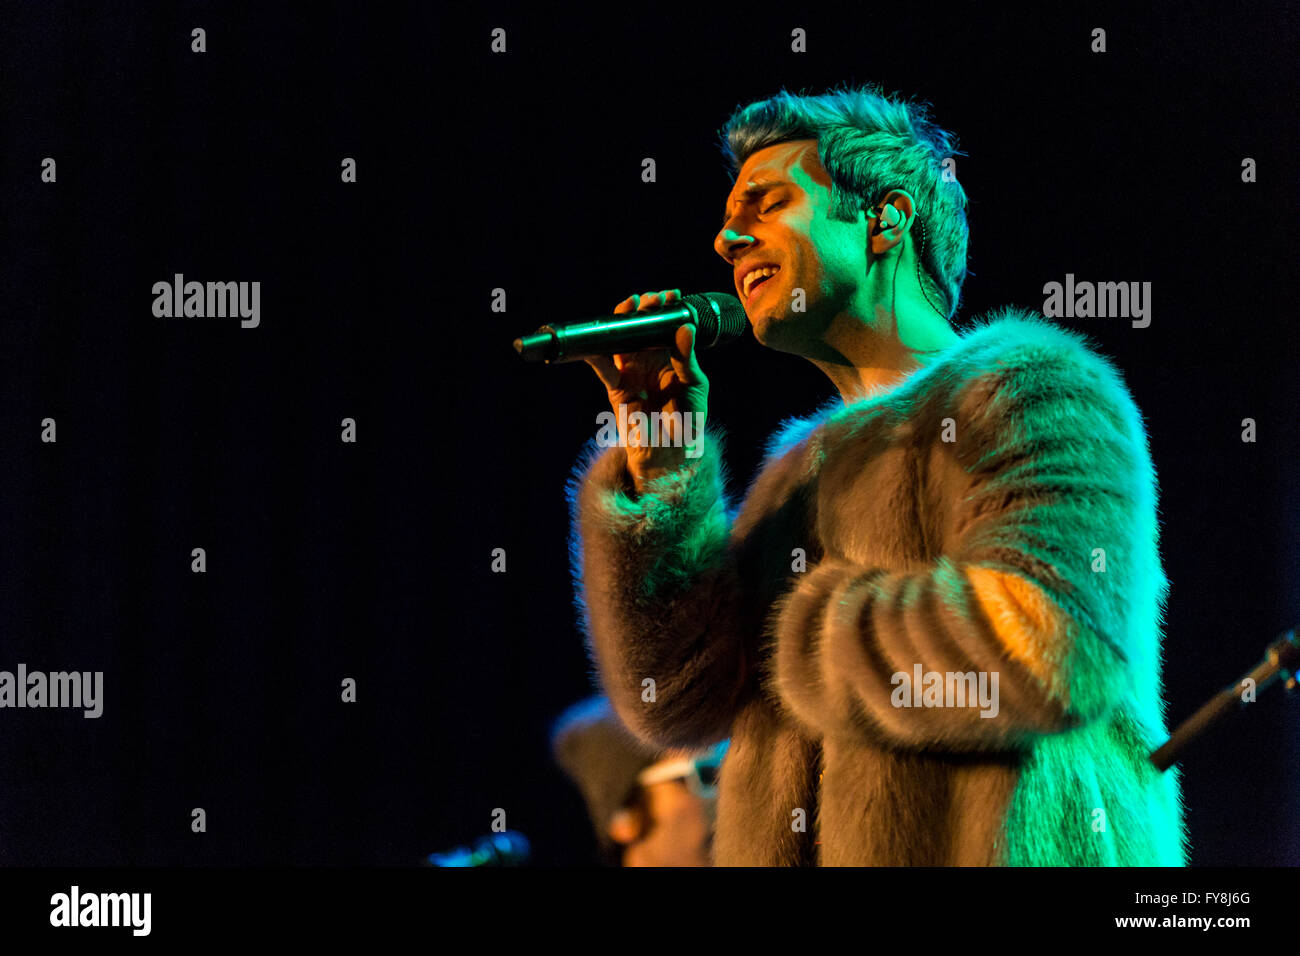 Chad King of A Great Big World @ The Rio Theatre - March 24th 2016 - Stock Image